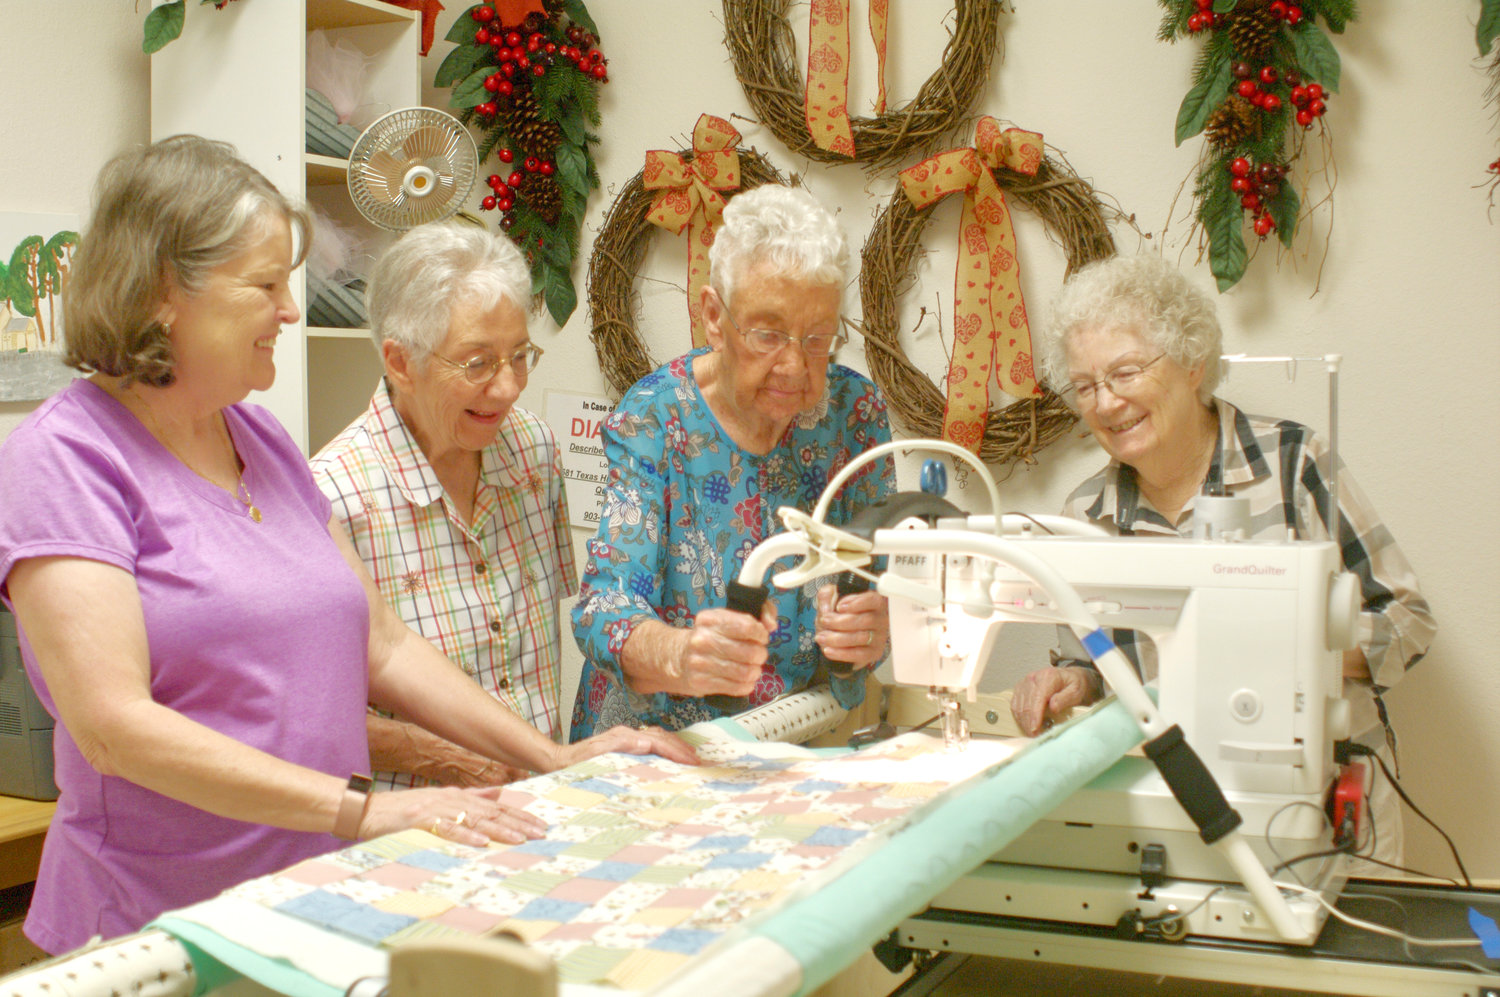 From left, Priscilla Massey, Winnsboro; Donna Benge, Quitman; Teddy Shampine, Quitman; and JoAnna Nelson, Quitman check the new quilting machine's operation. (Courtesy photo Dean Benge)